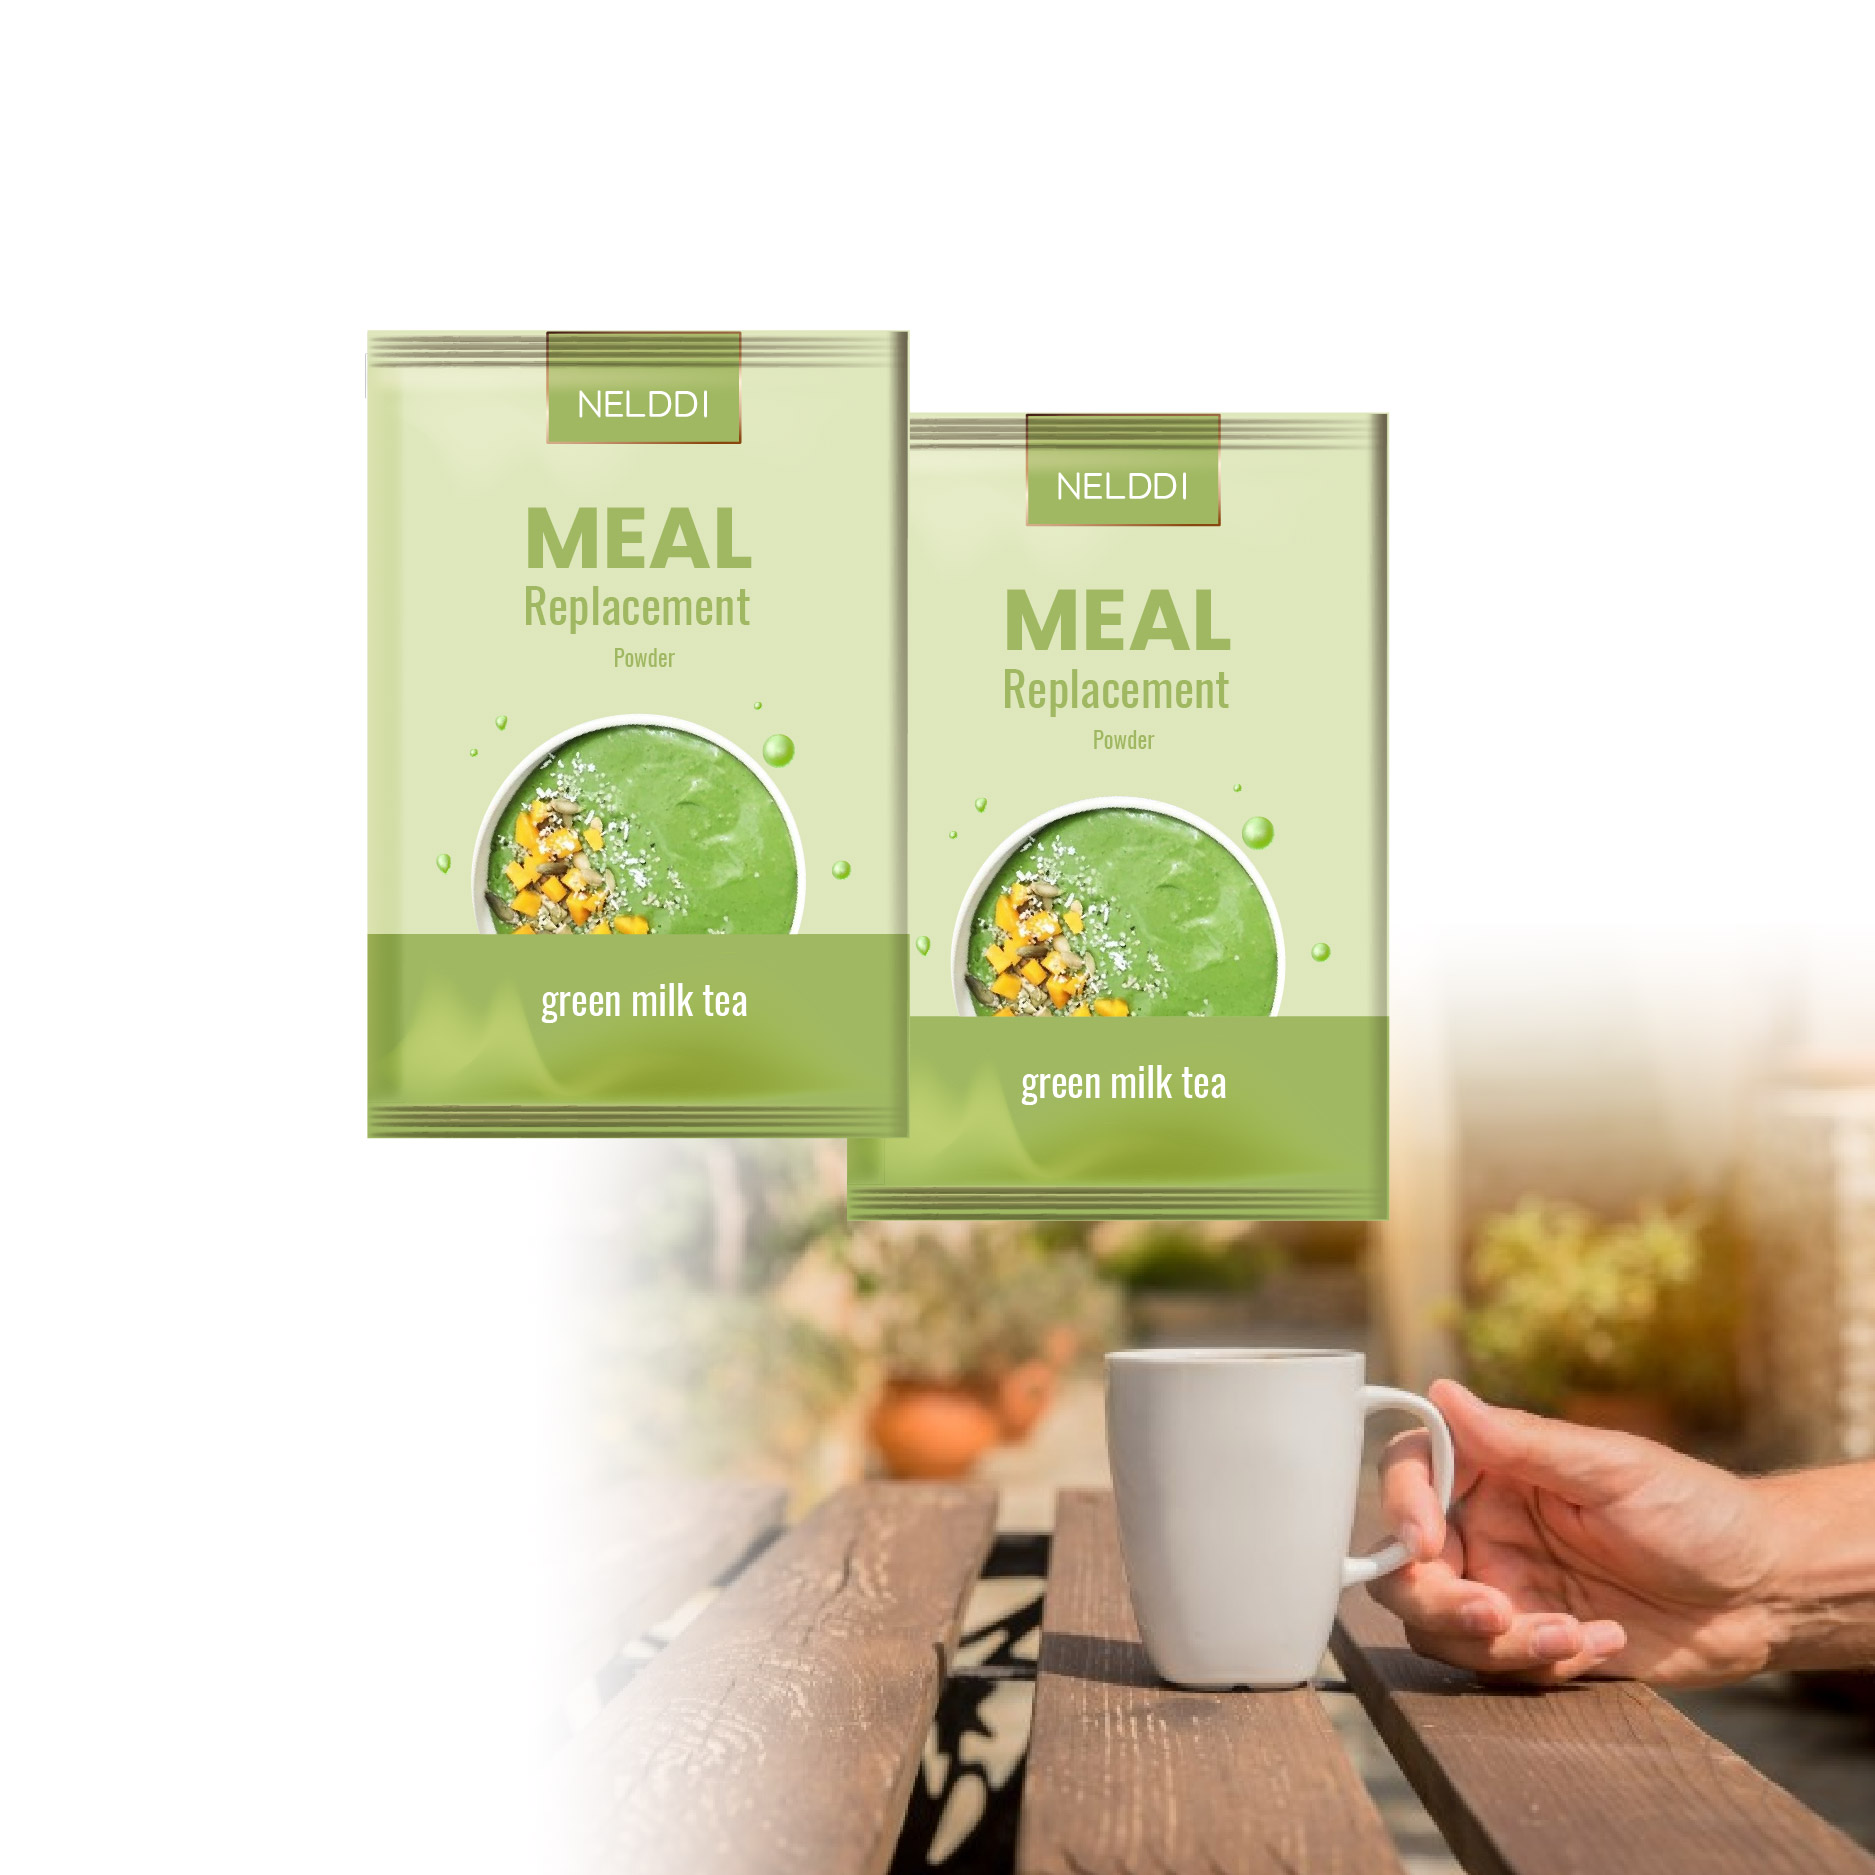 weight loss meal replacement powder private label